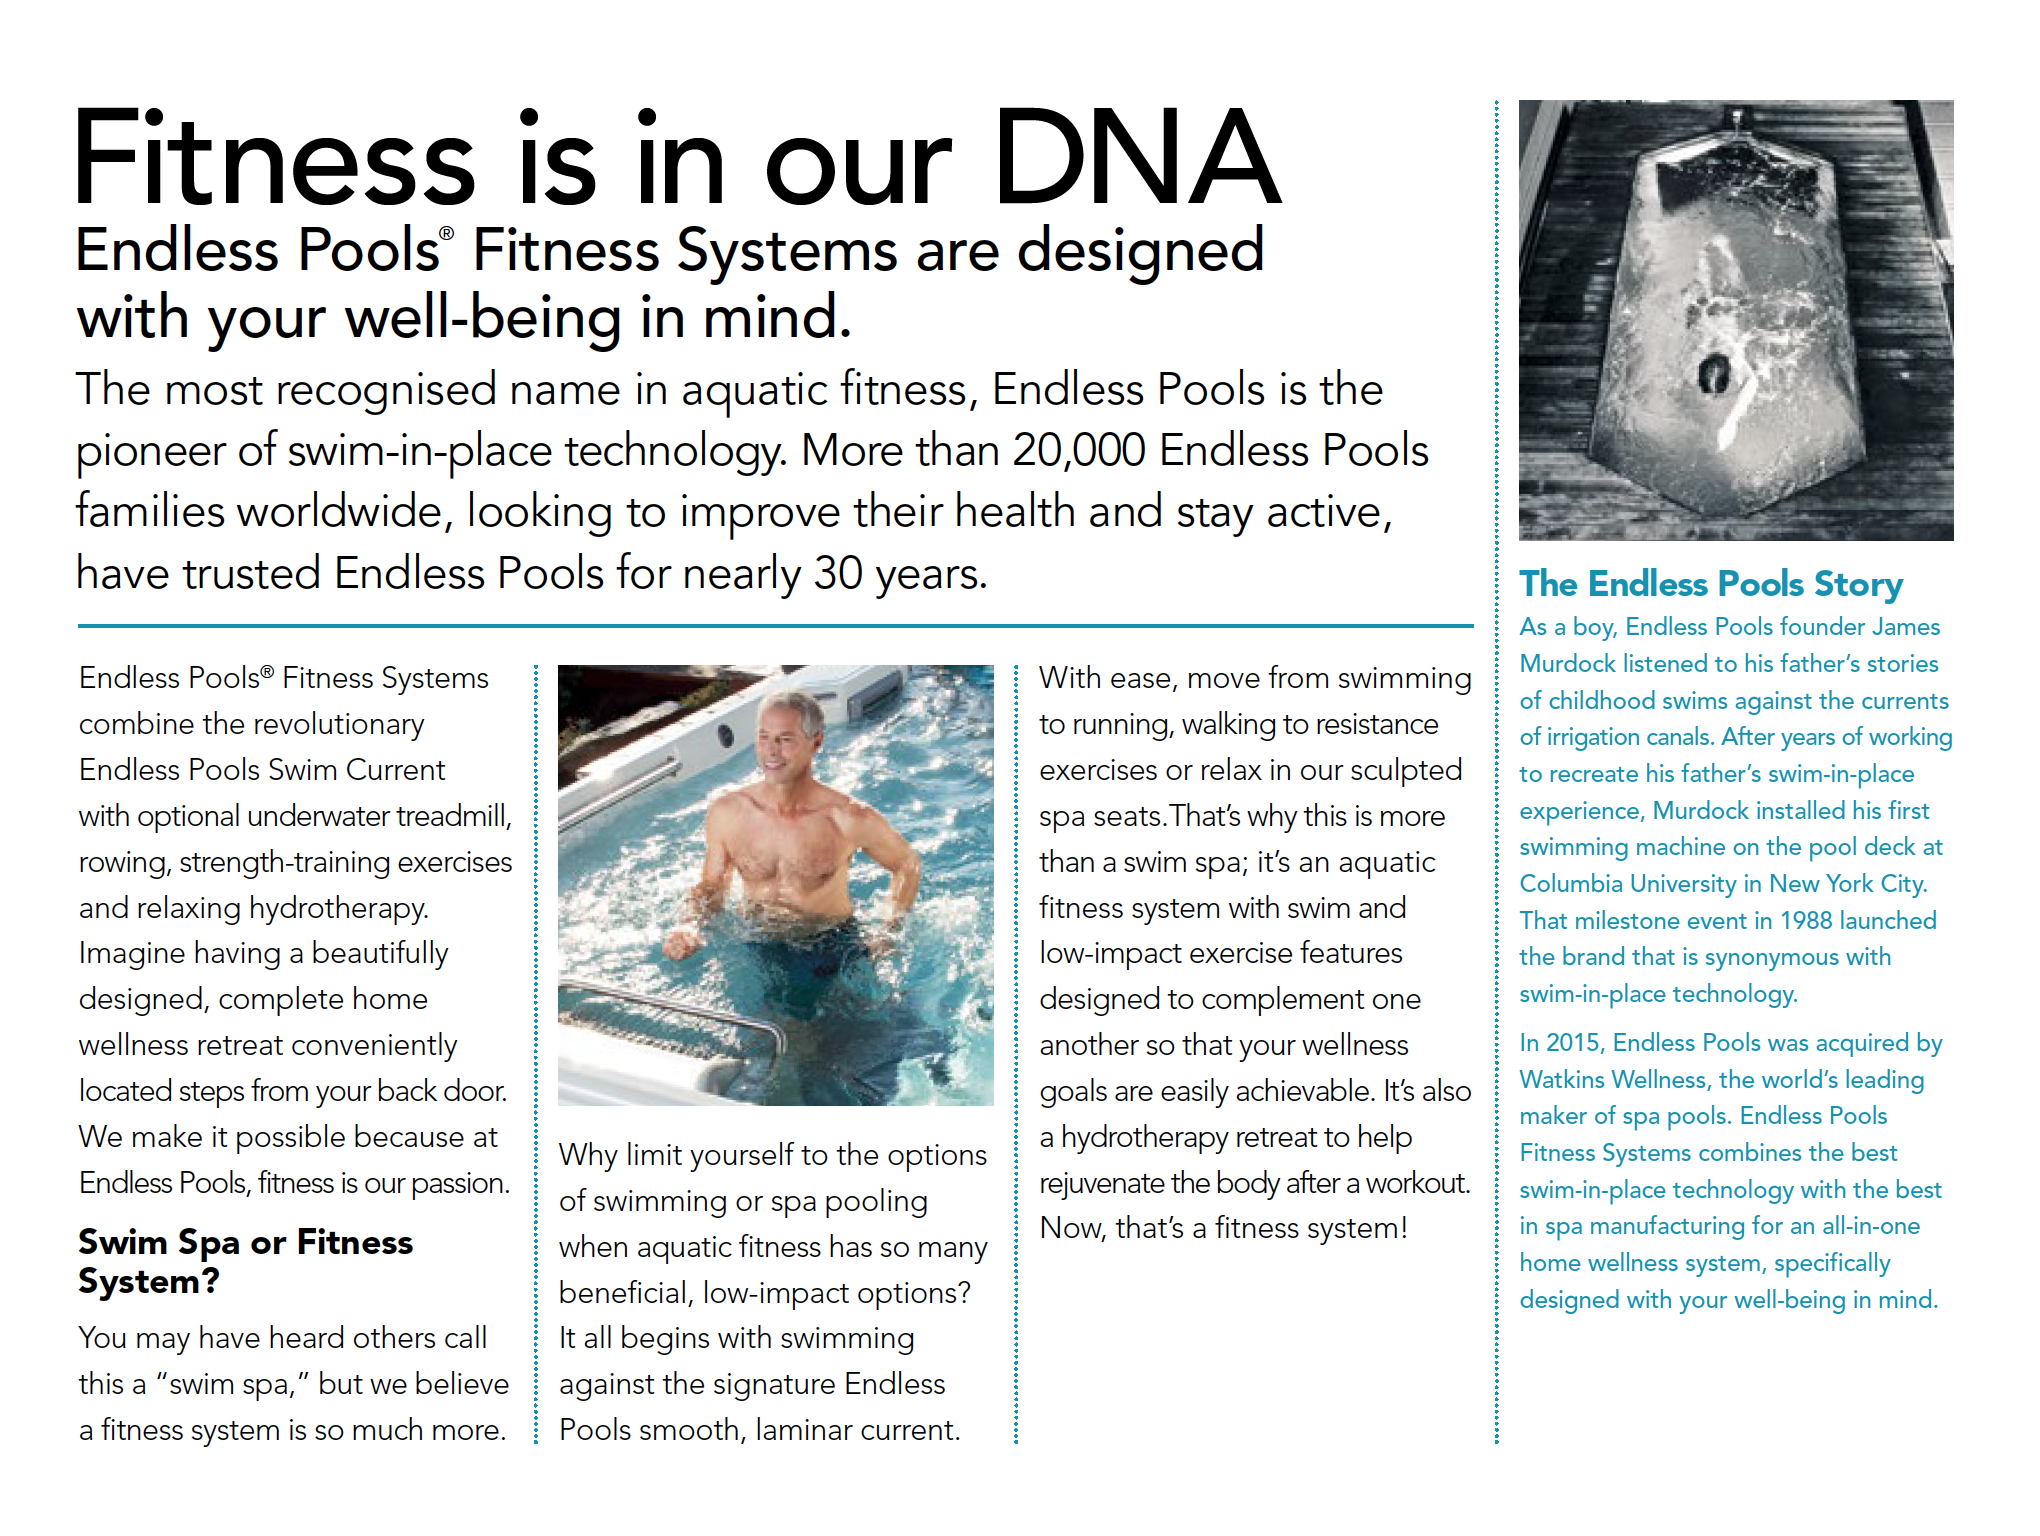 swim-spa-nz-endless-pools-2020-04-18-at-9.55.06-am-21.png